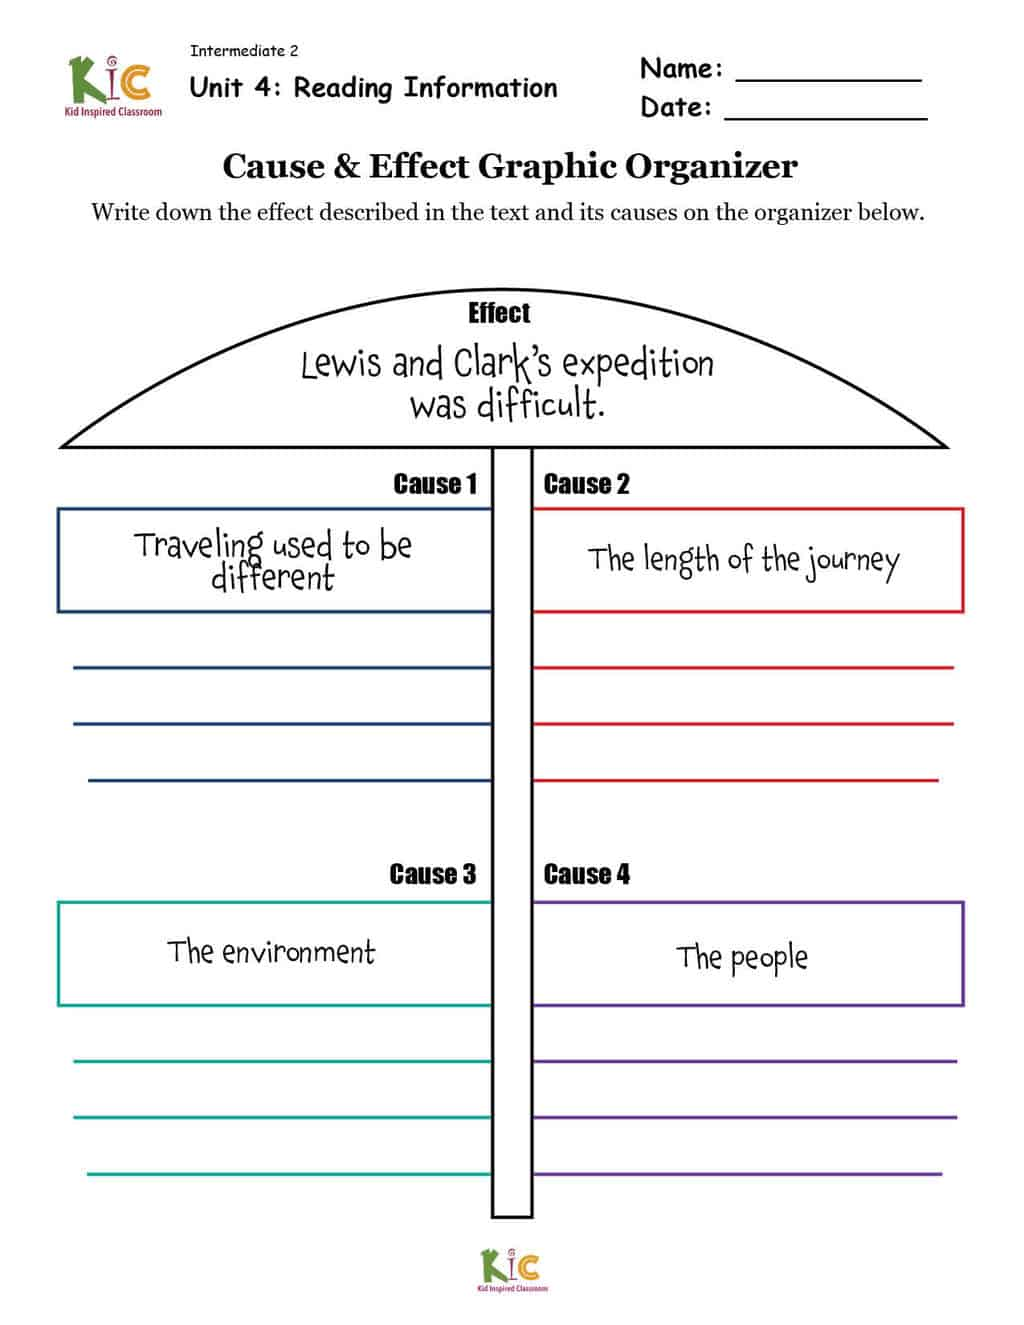 Lewis and Clark Cause and Effect Graphic Organizer for ESL Reading Comprehension